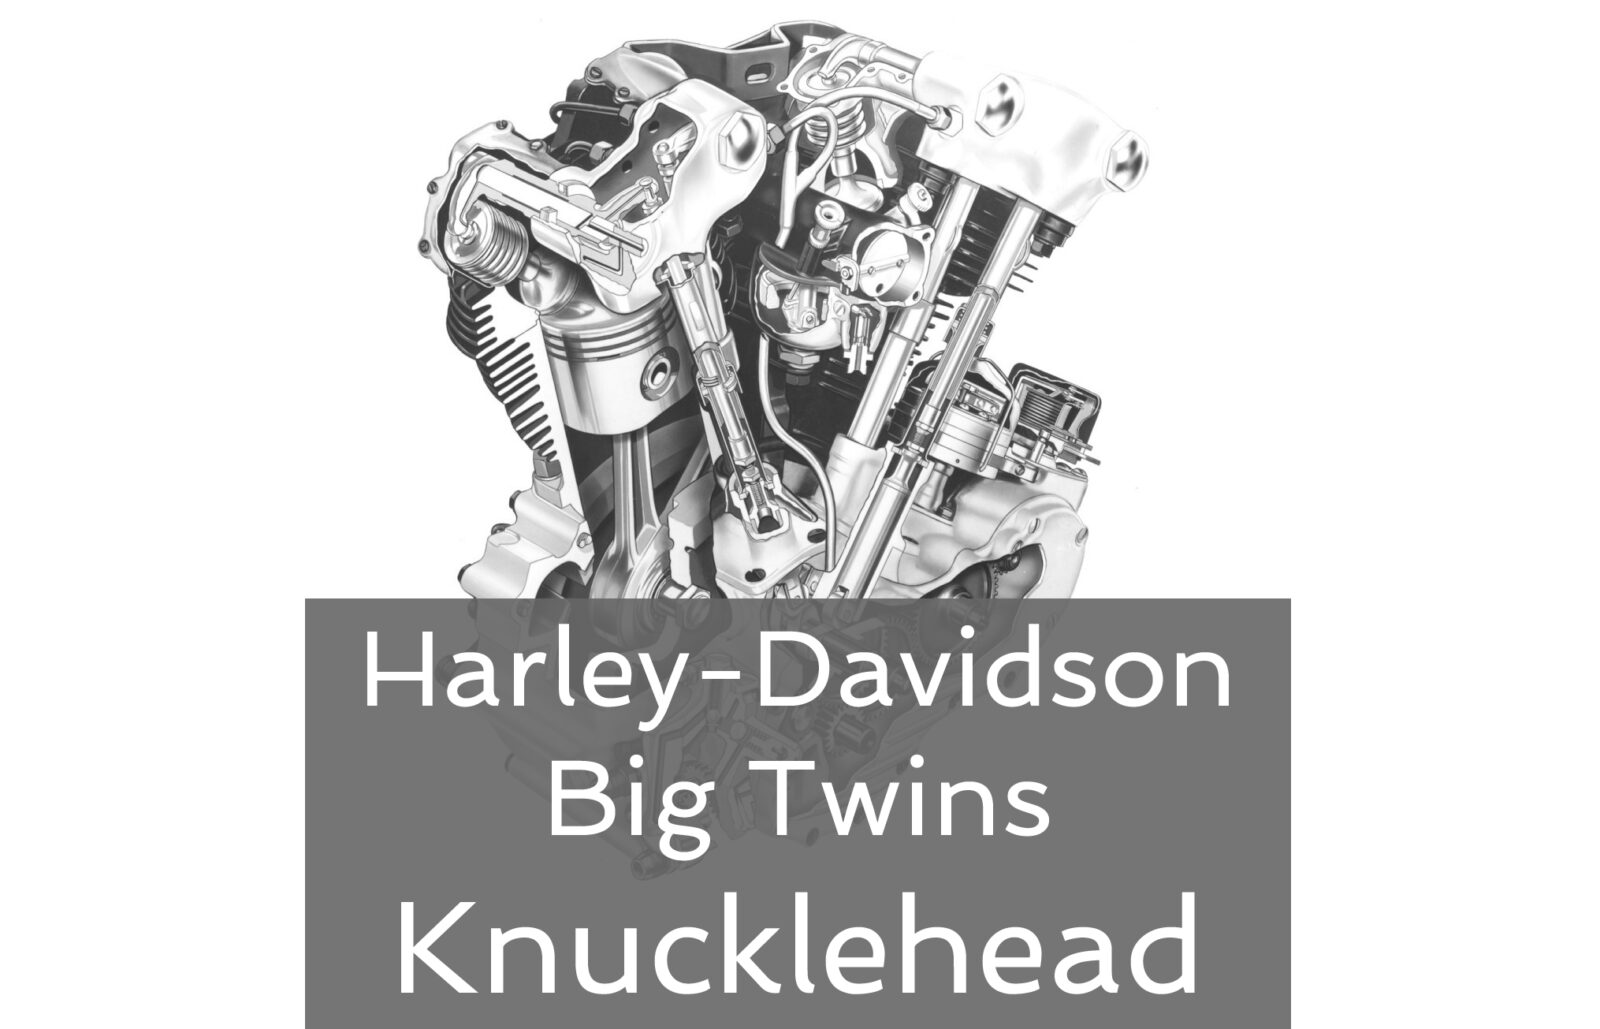 Knucklehead Hero Image 1600x1029 - Harley-Davidson Big Twins – The Knucklehead